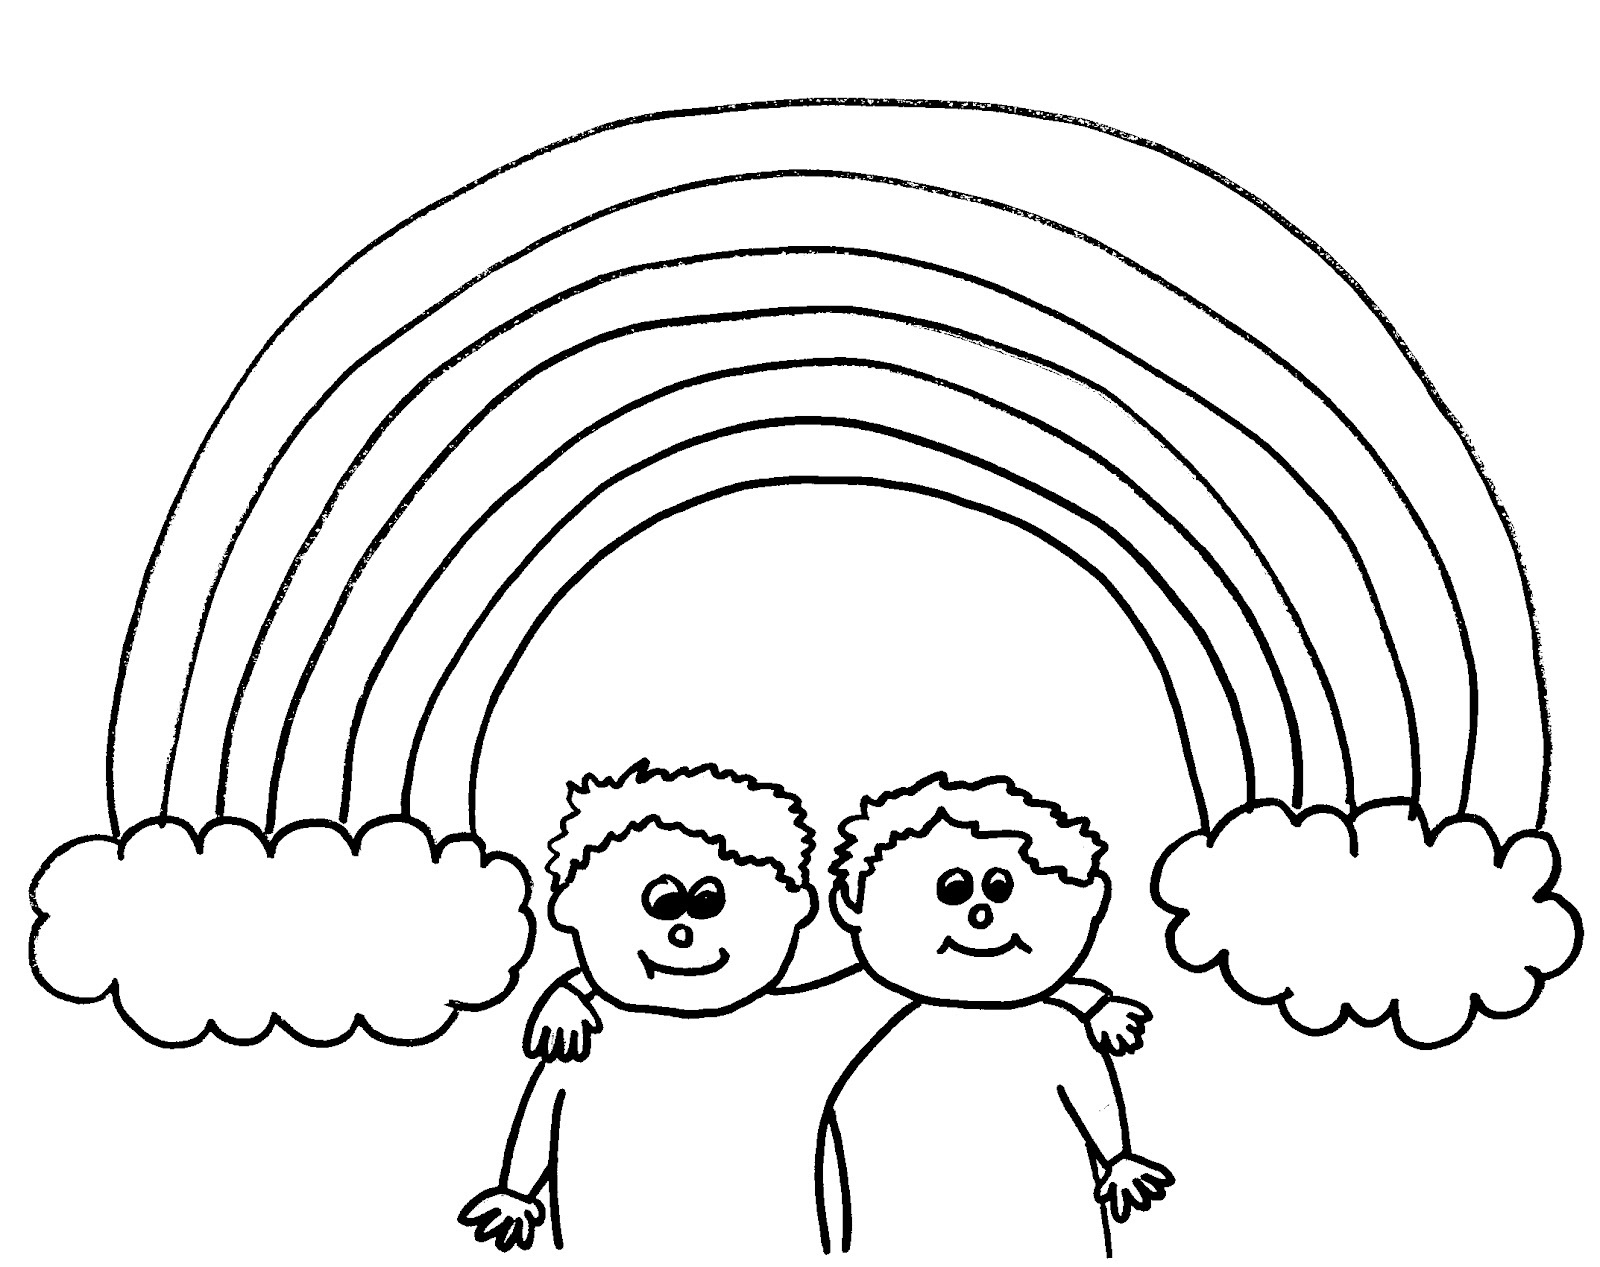 rainbow coloring pages for kid - photo#4